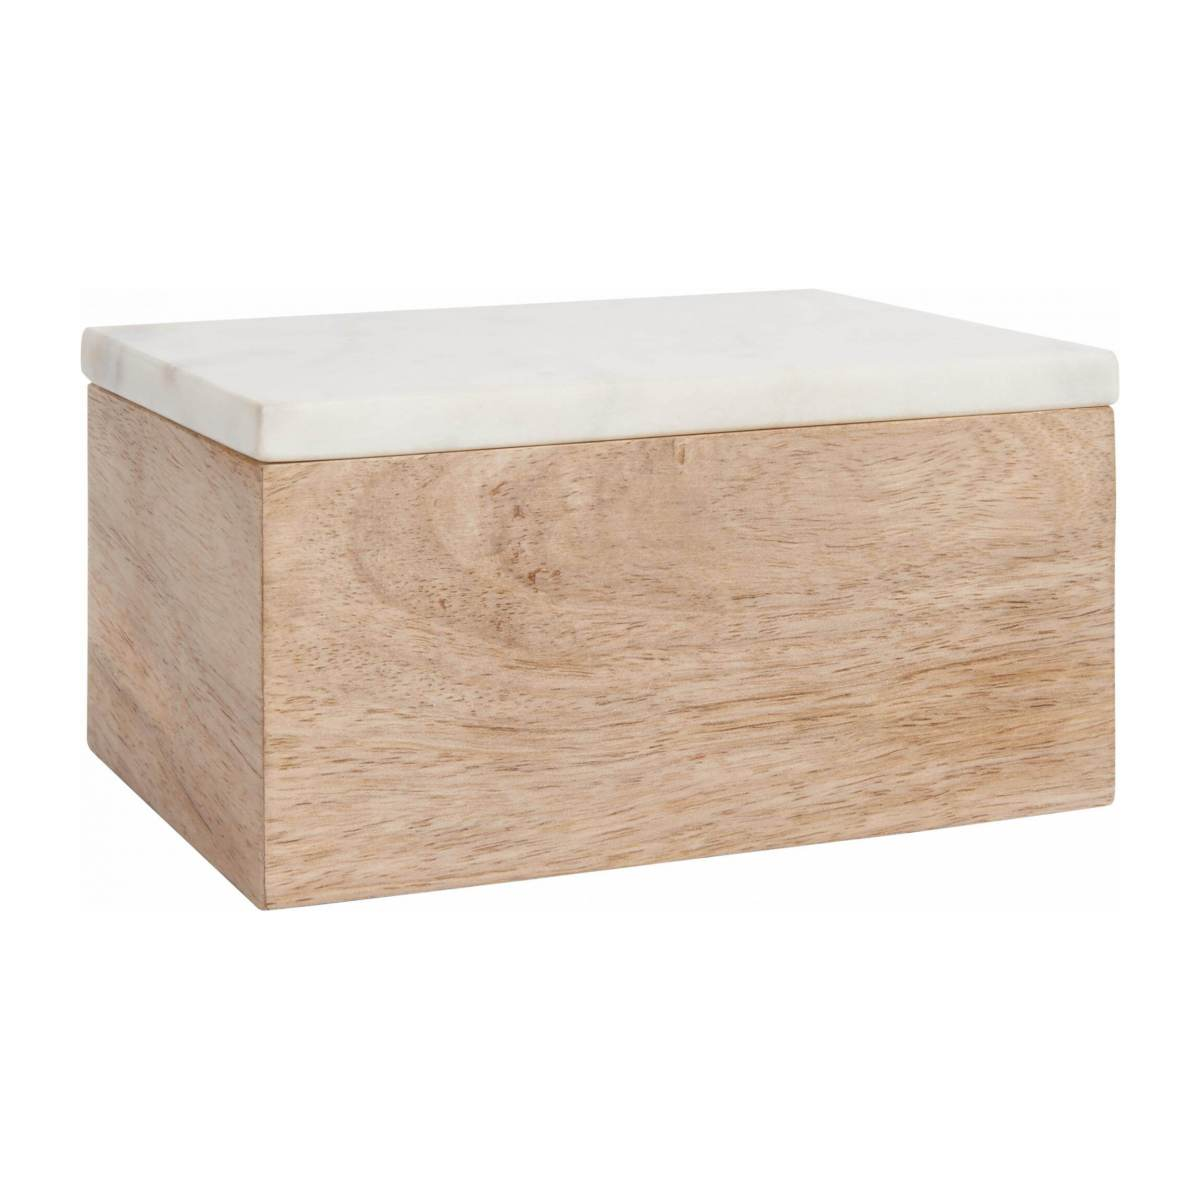 Box made of wood and marble n°1